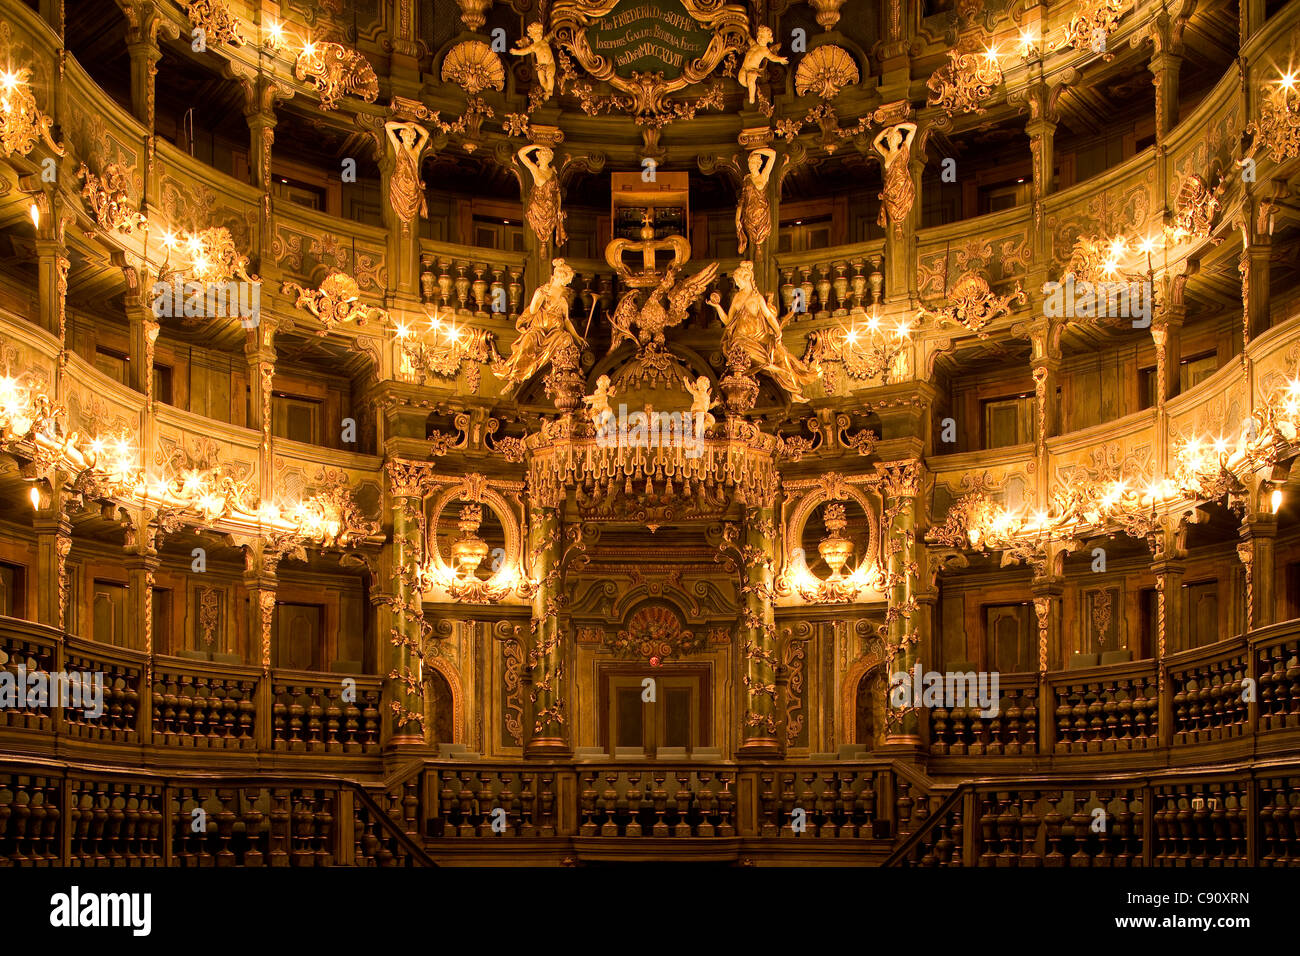 Interior view of Margrave's Opera House, a Baroque opera house, Bayreuth, Bavaria, Germany, Europe - Stock Image